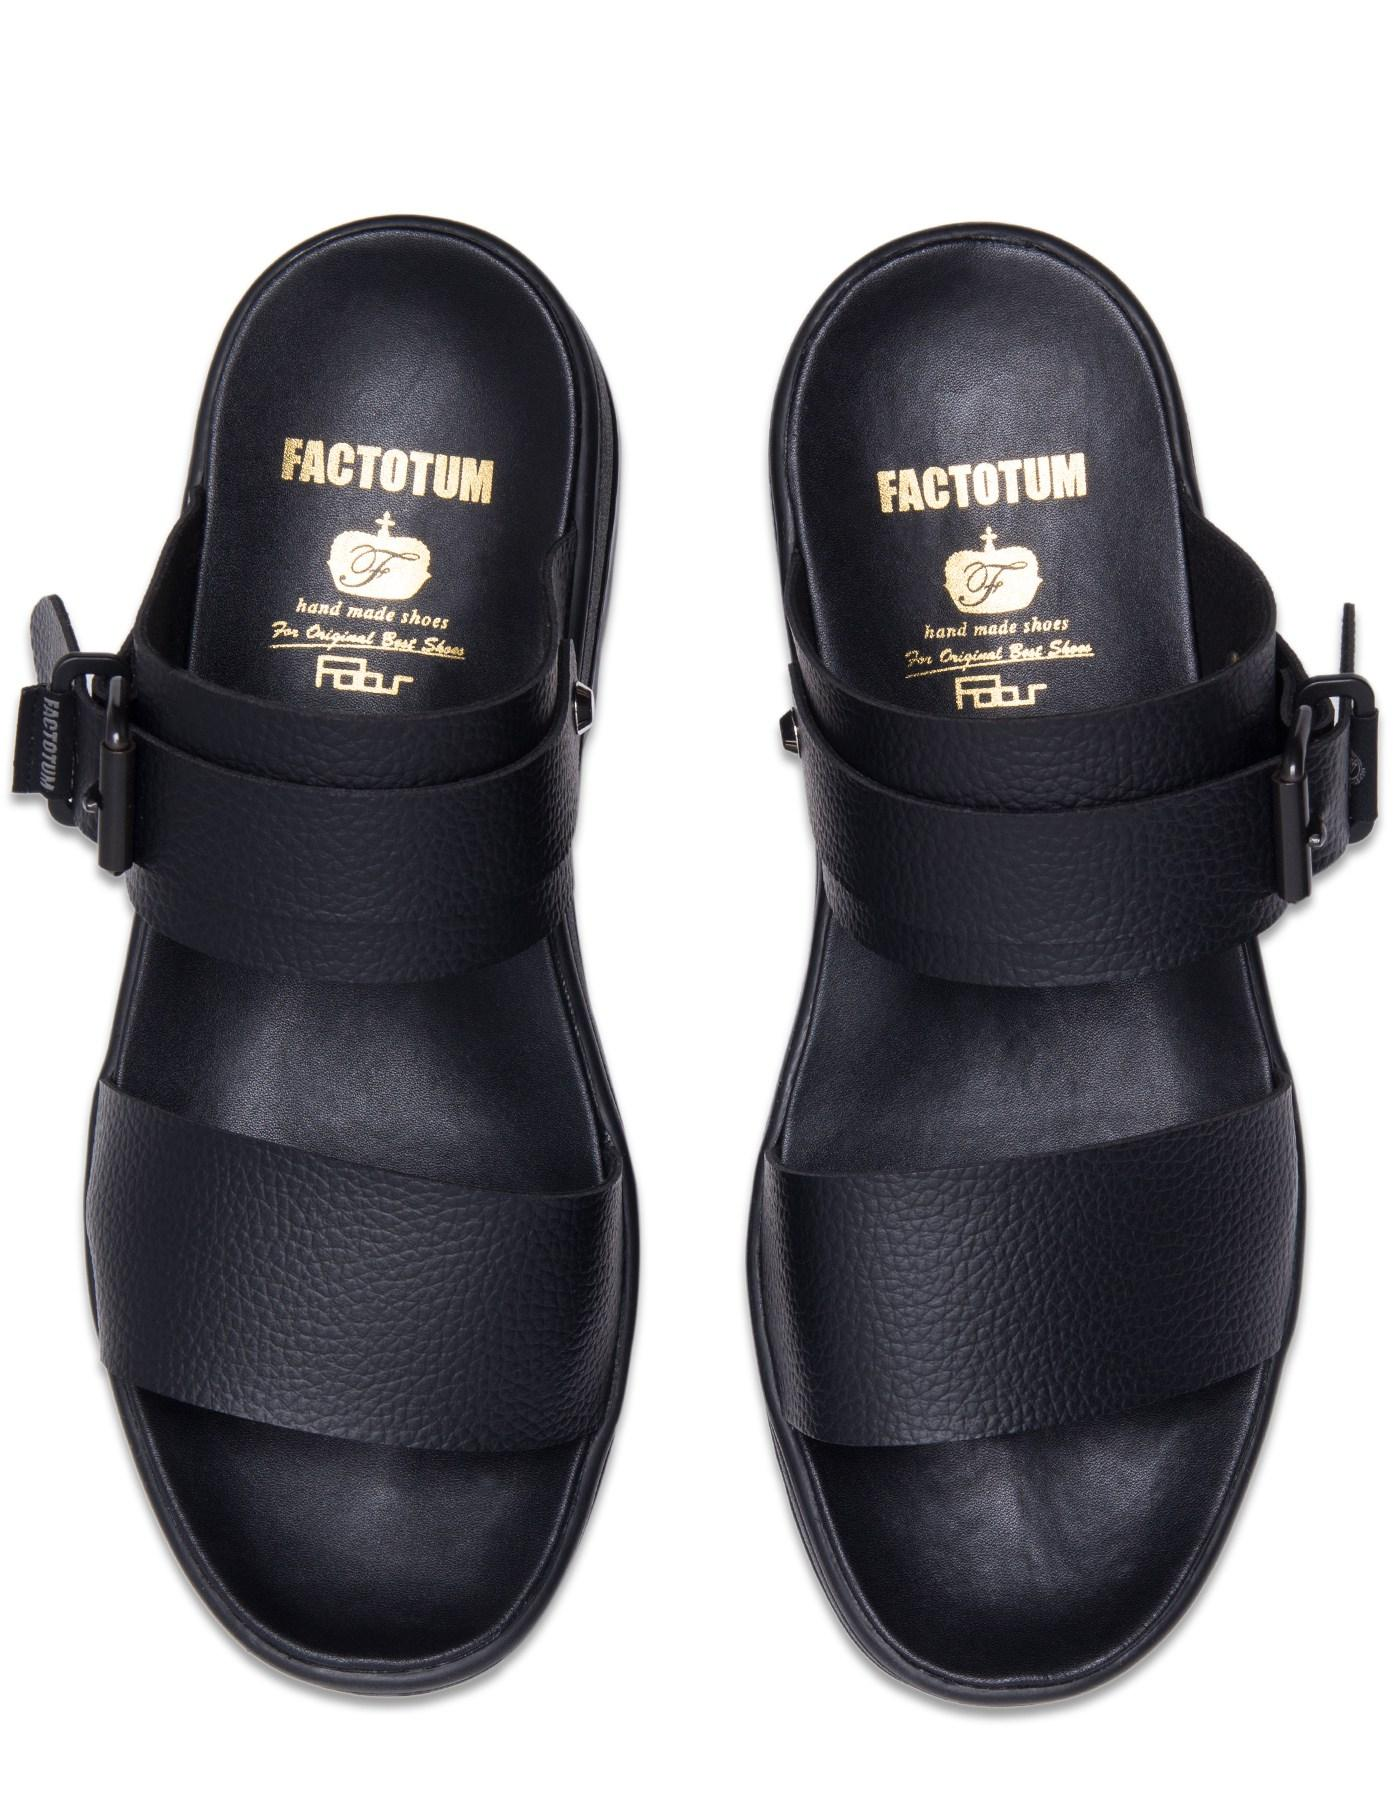 Factotum Black Two Way Sandals With Vibram Sole for men